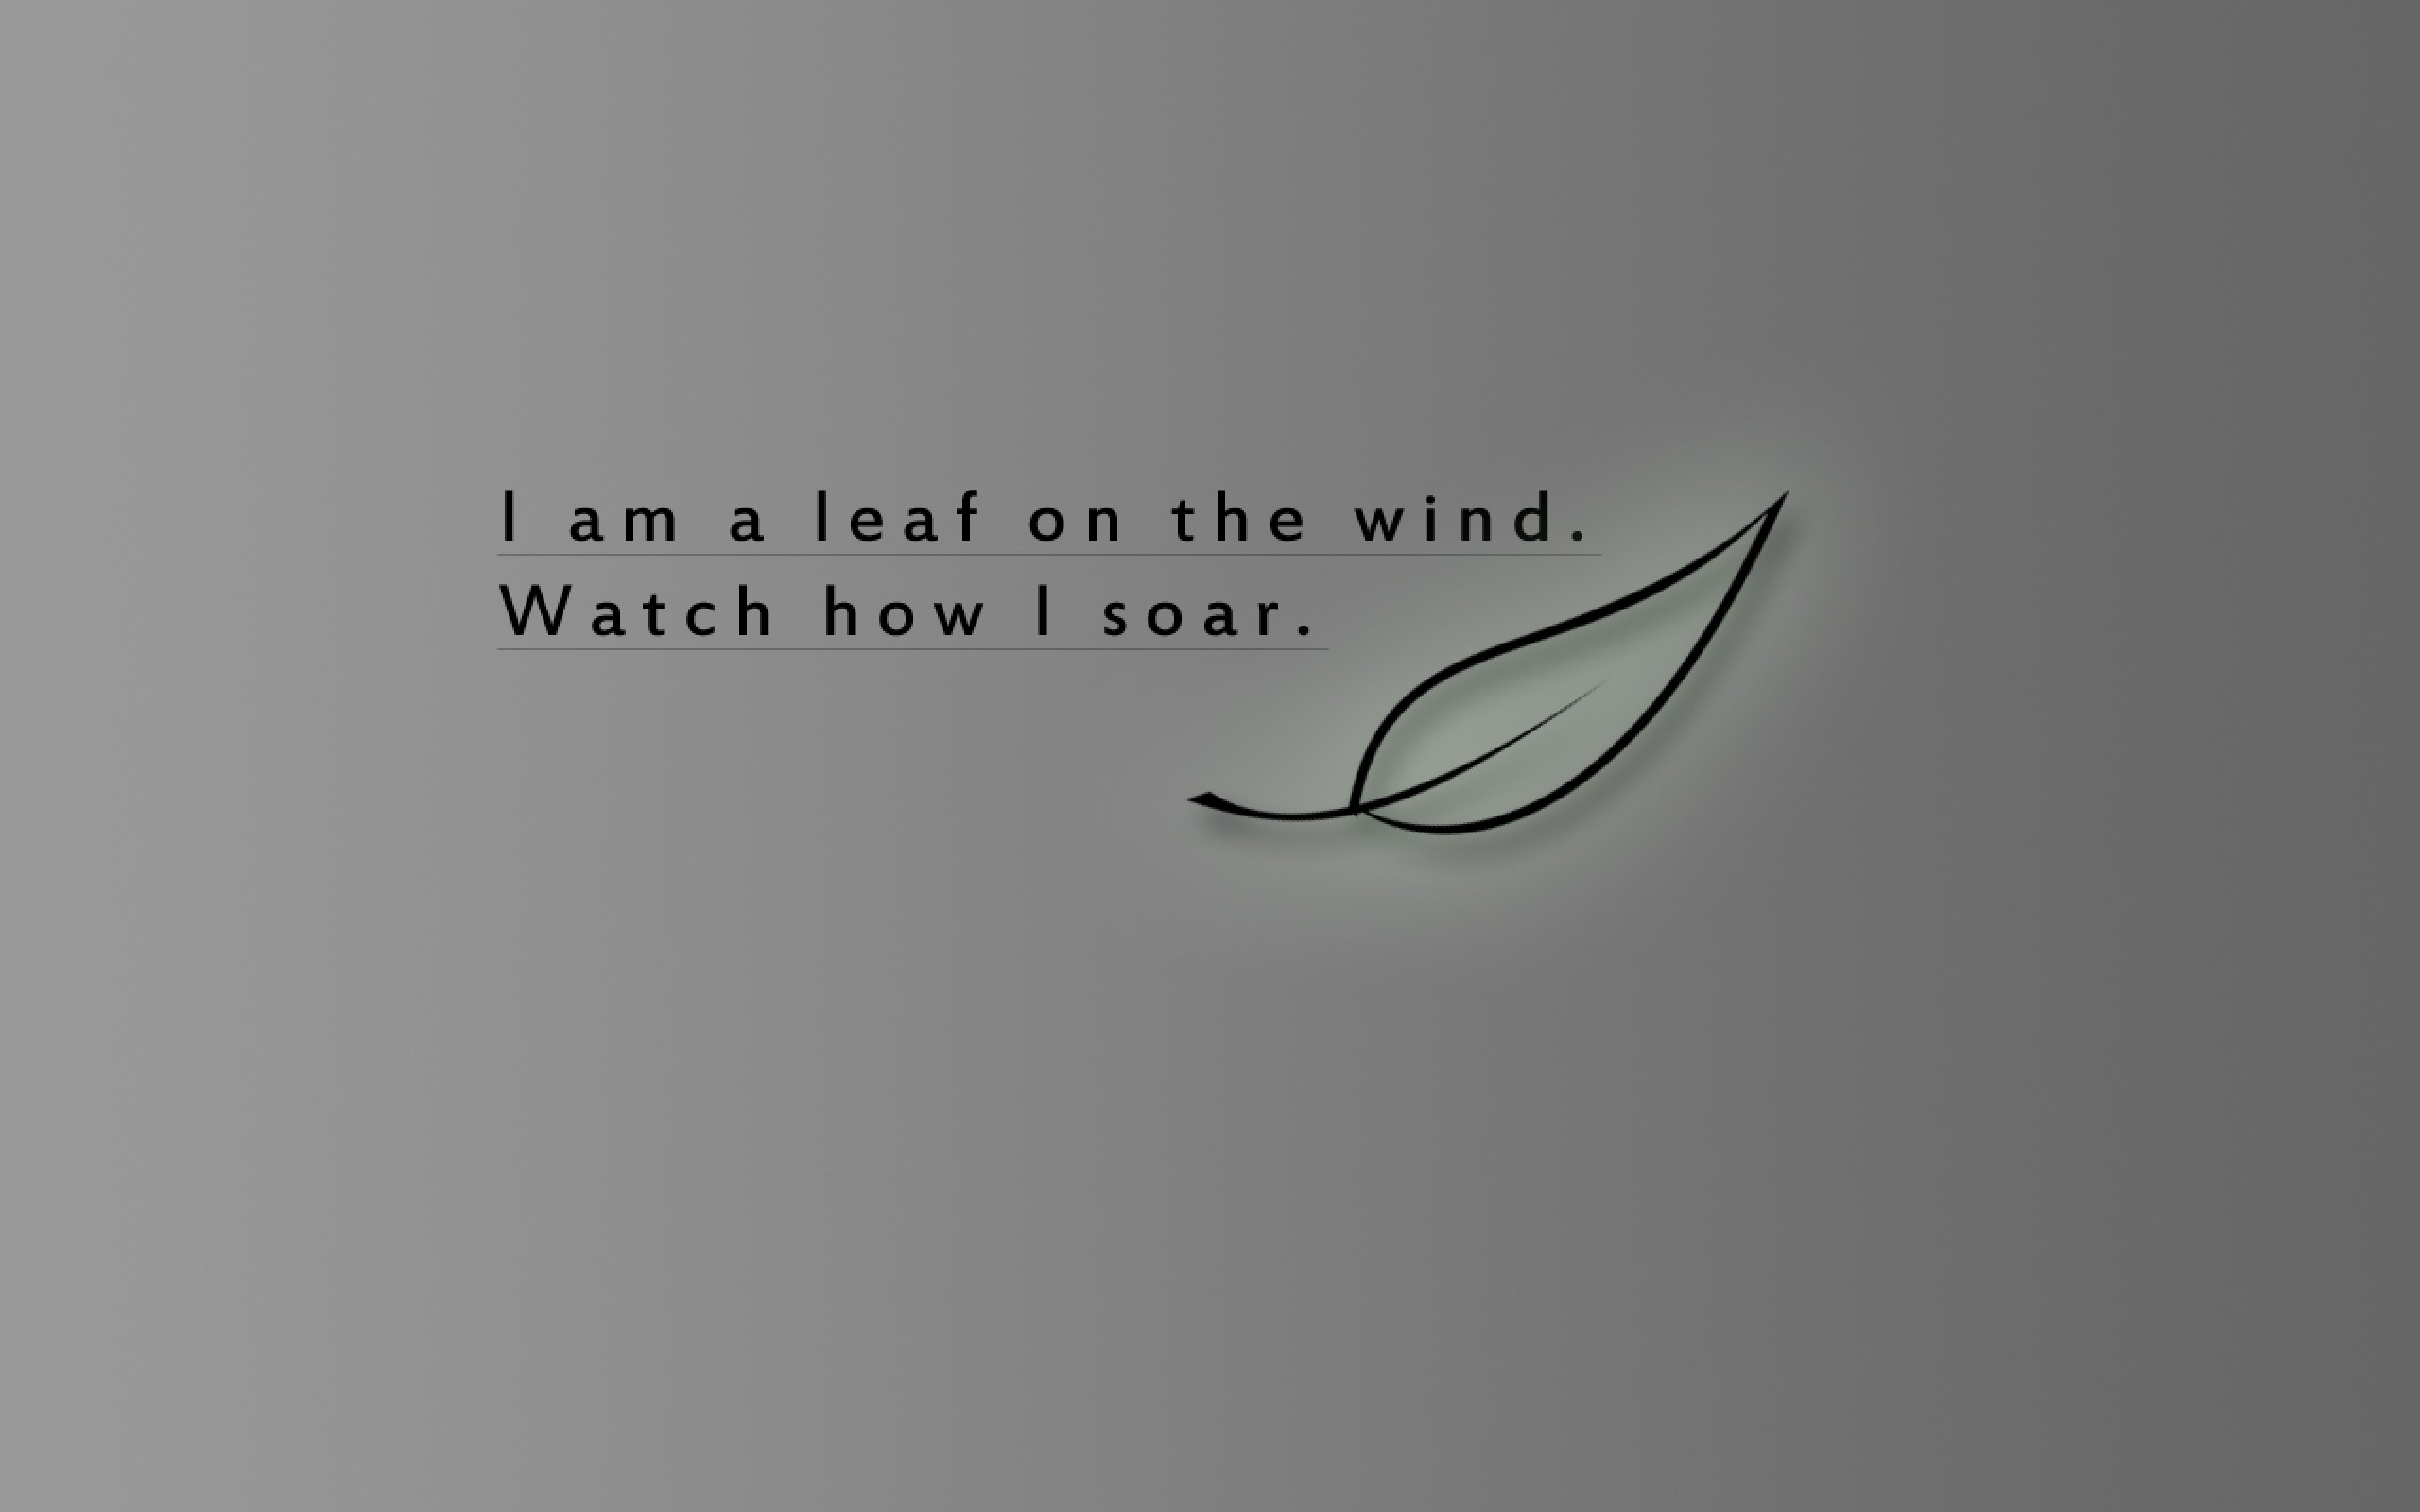 serenity leaf quotes wind firefly fly watches Wallpaper HD | come .